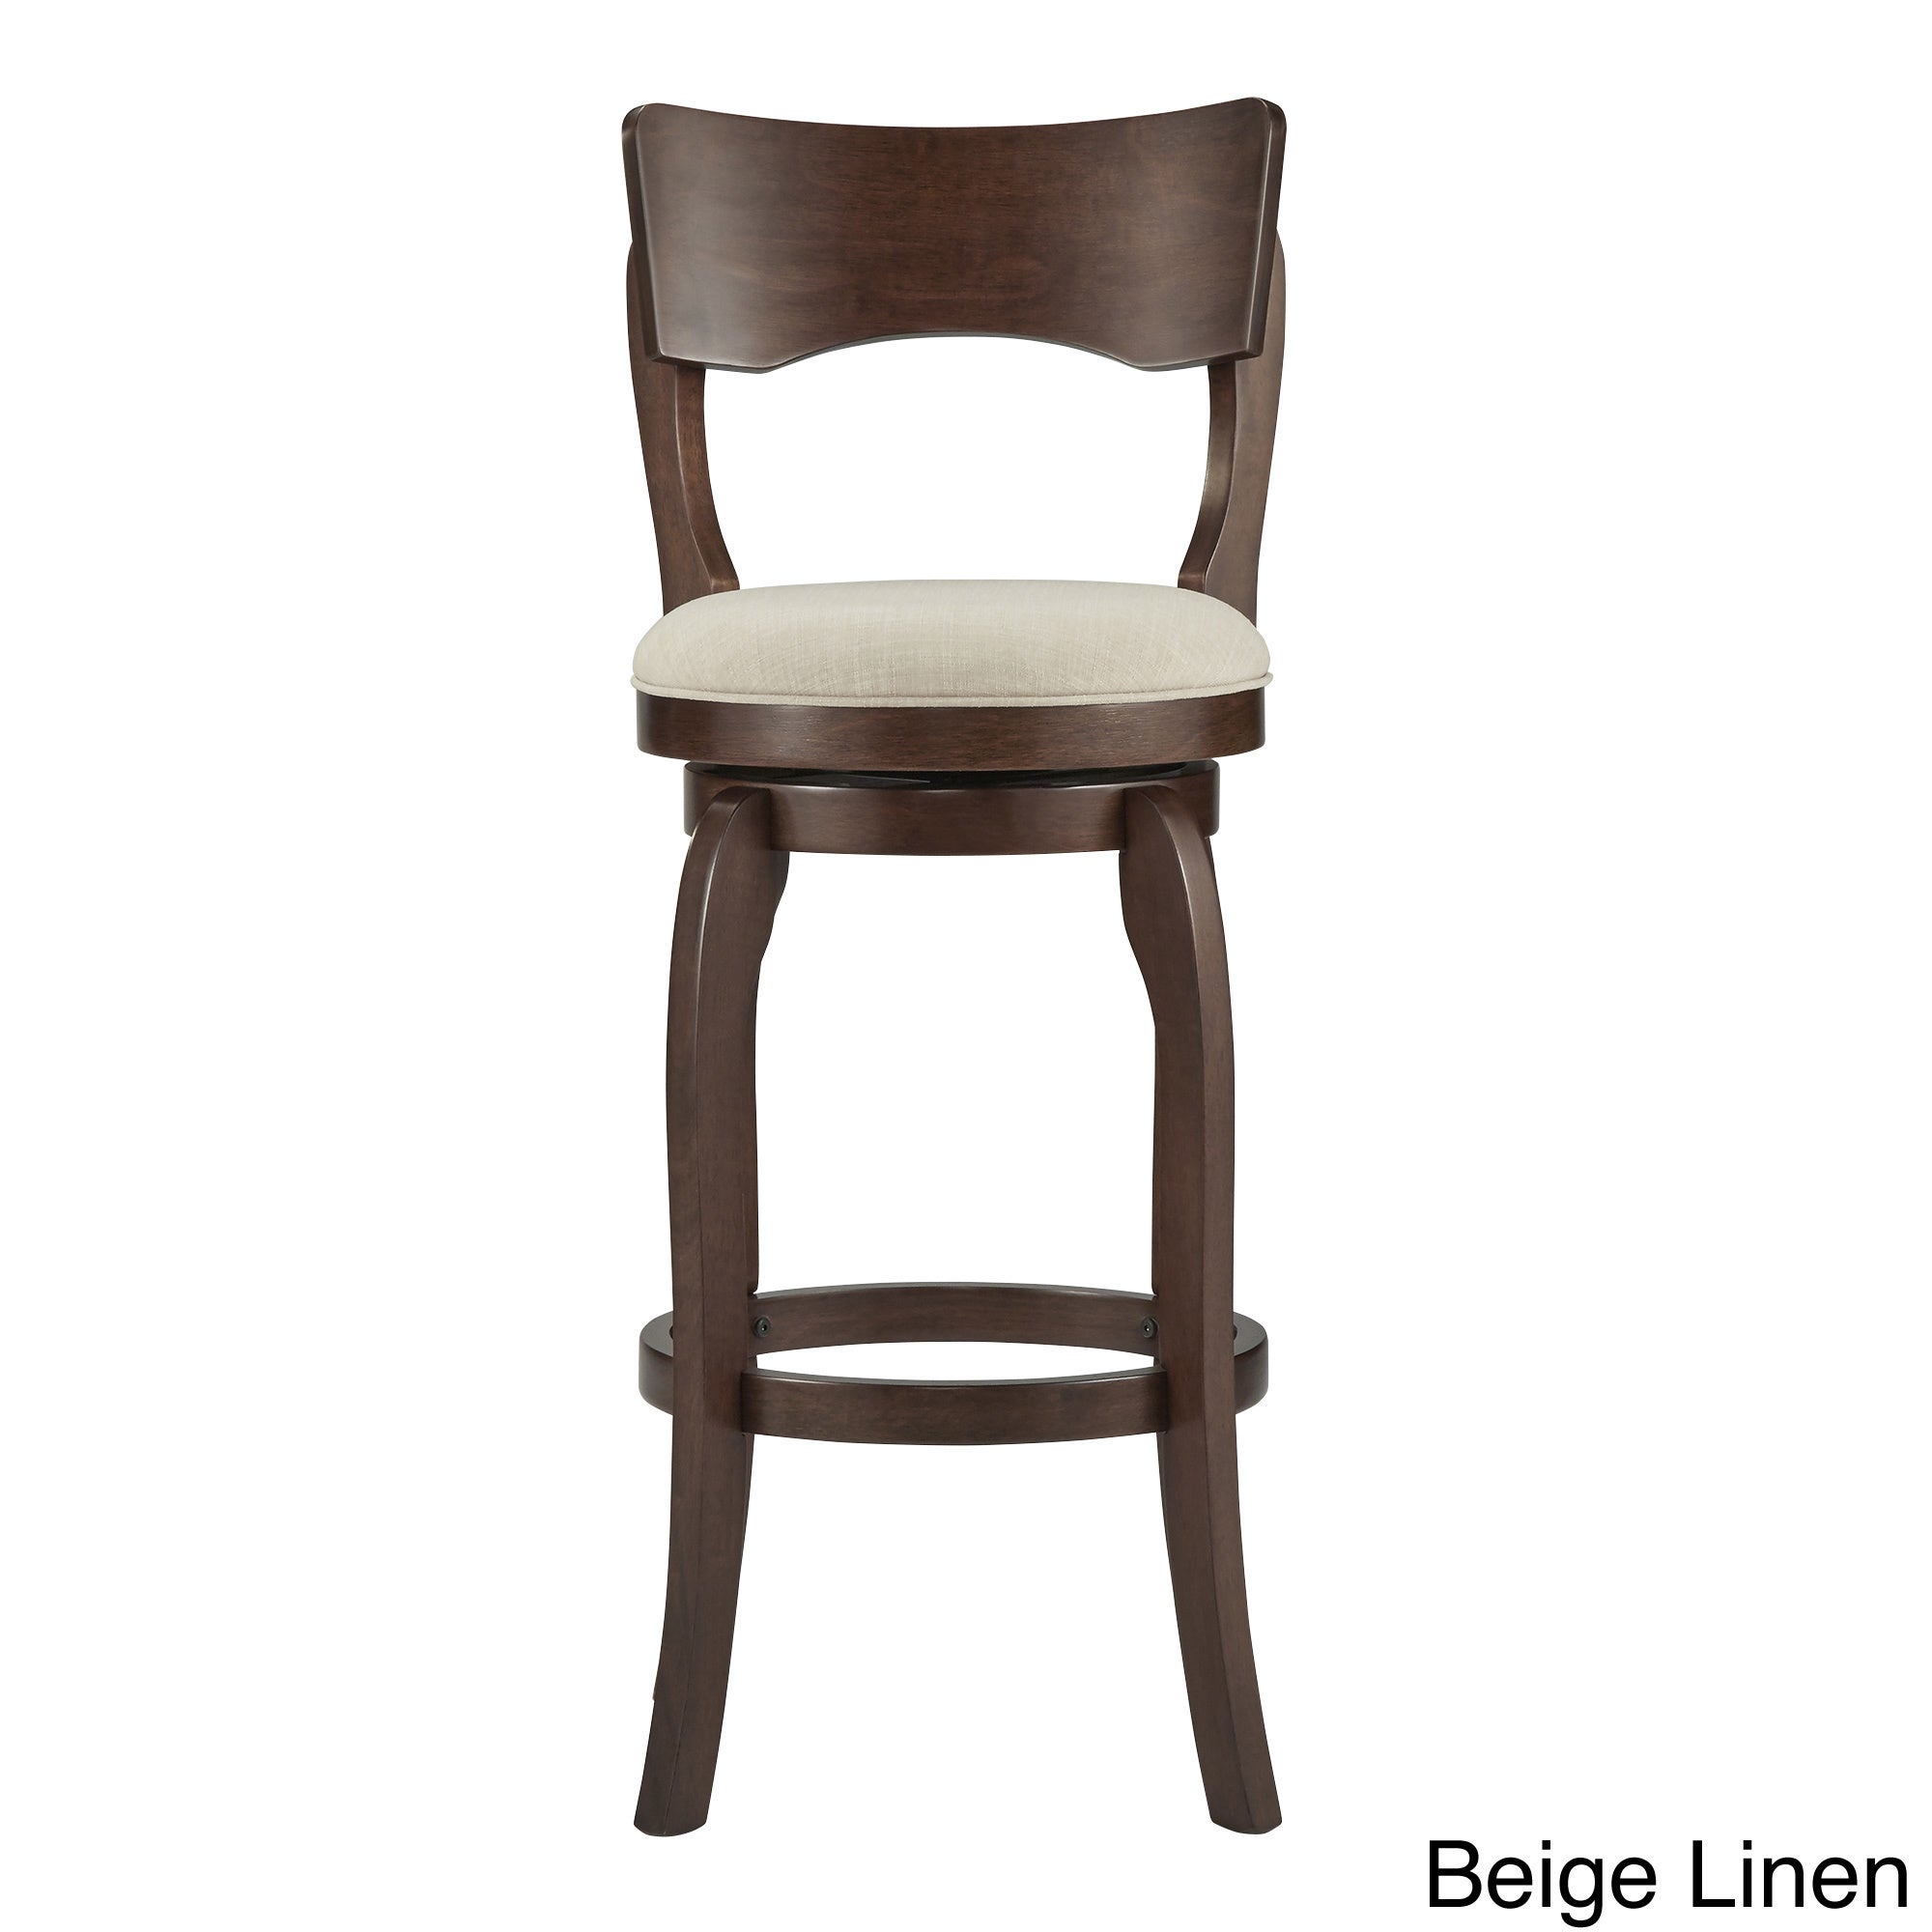 Awesome Details About Lyla Swivel 29 Inch Brown High Back Bar Height Barstool By Dailytribune Chair Design For Home Dailytribuneorg